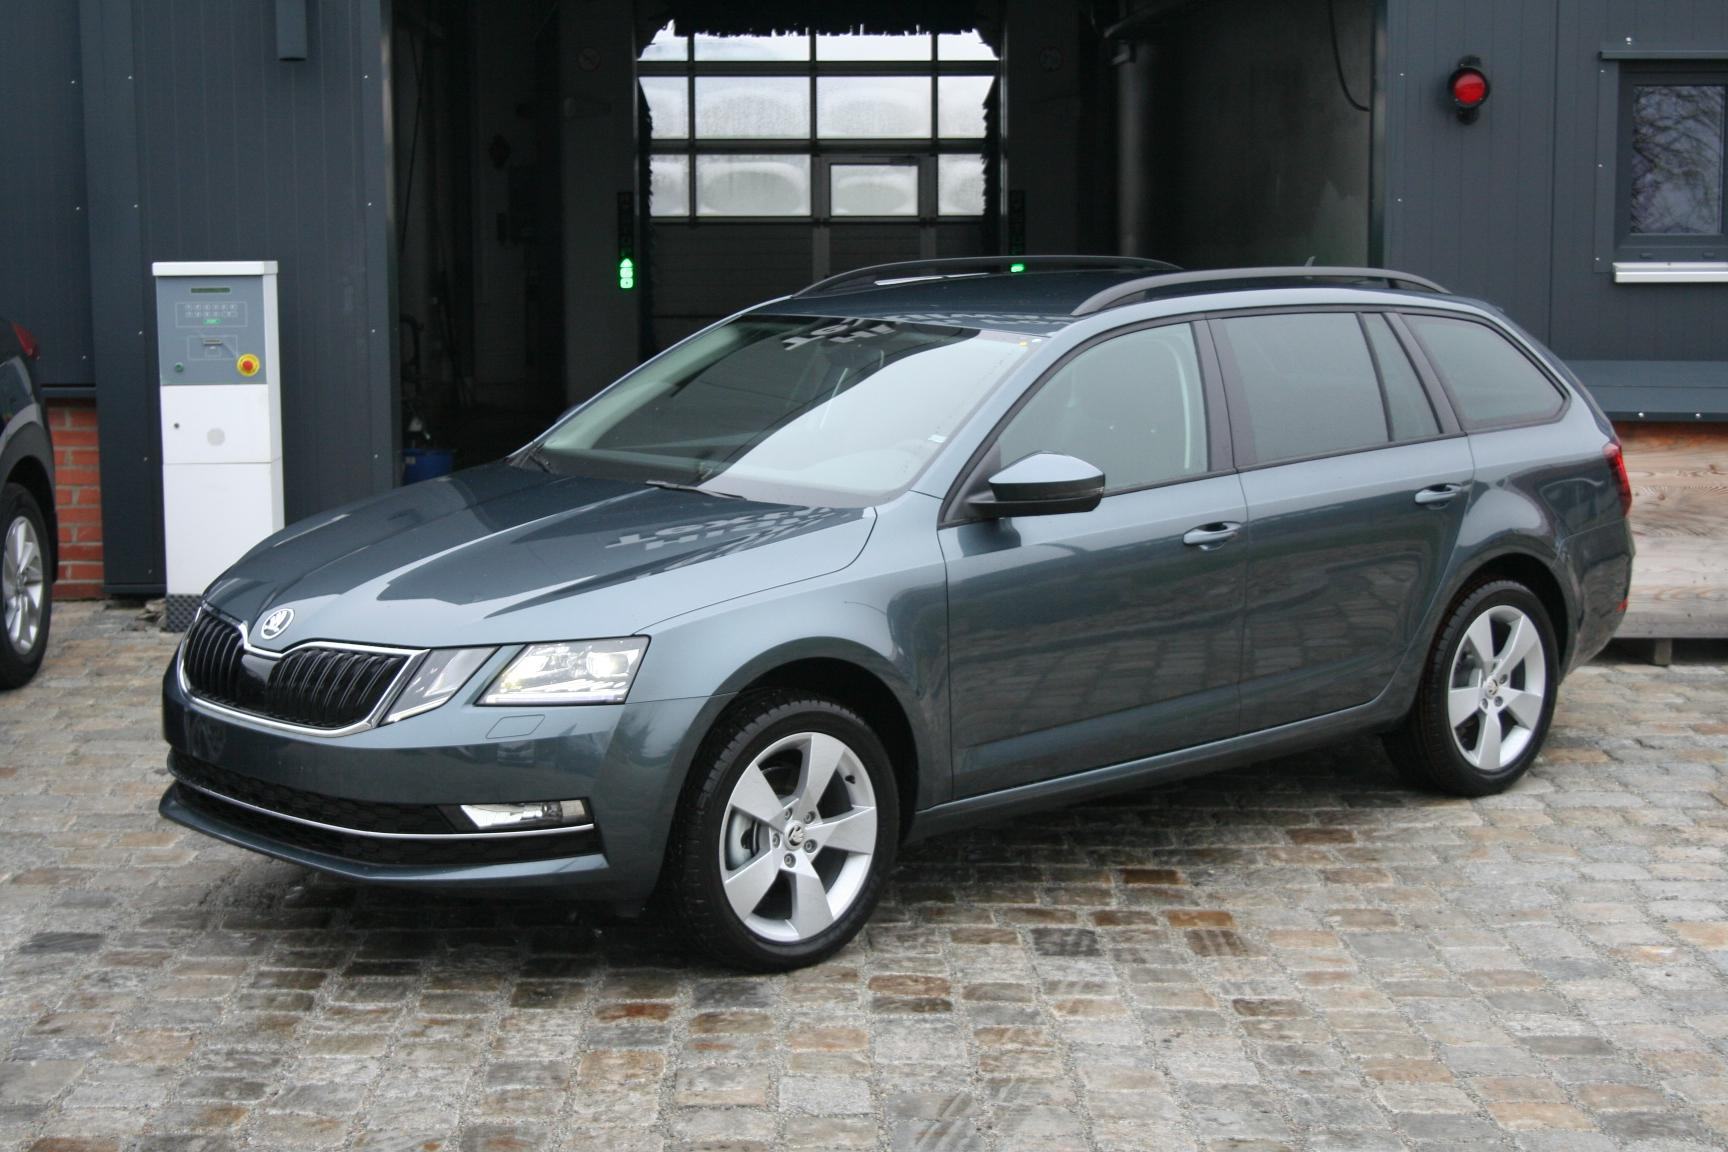 skoda octavia combi neues modell 1 4 tsi 150 ps style 3 jahre garantie climatronic navi voll led. Black Bedroom Furniture Sets. Home Design Ideas